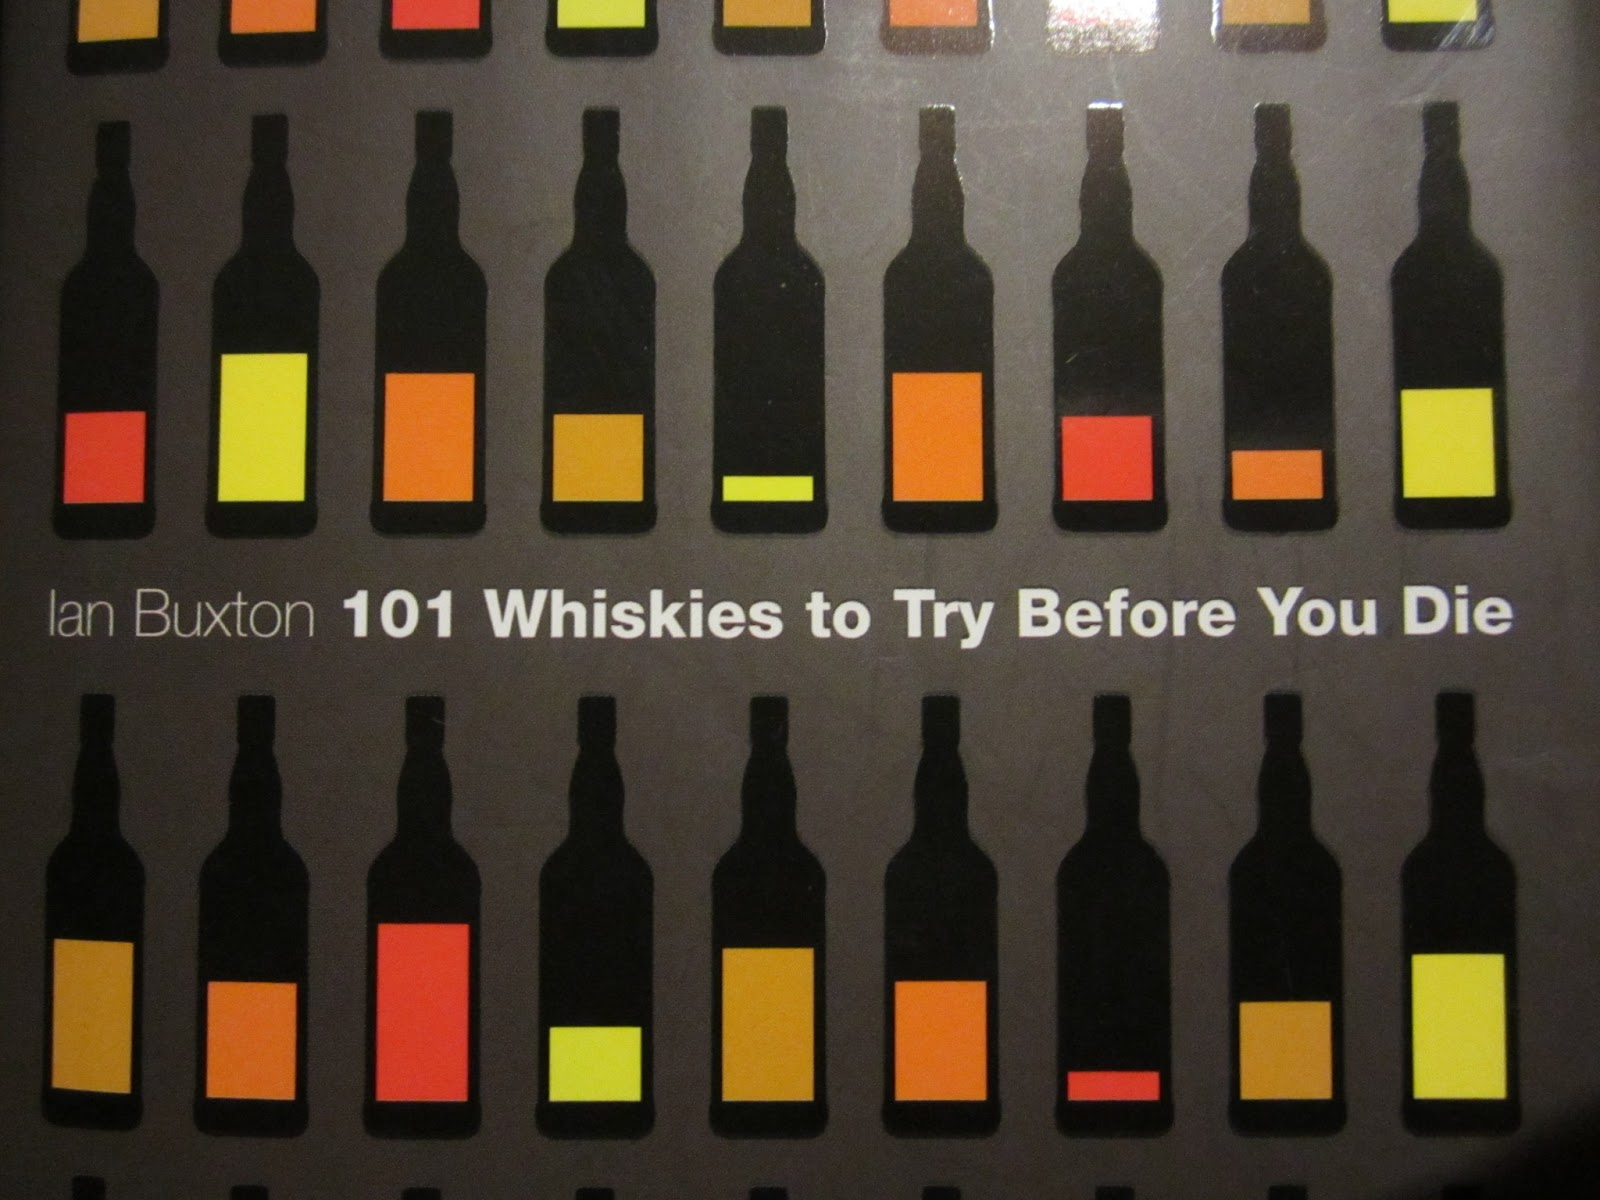 Book review; Ian Buxton's 101 Whiskies To Try Before You Die